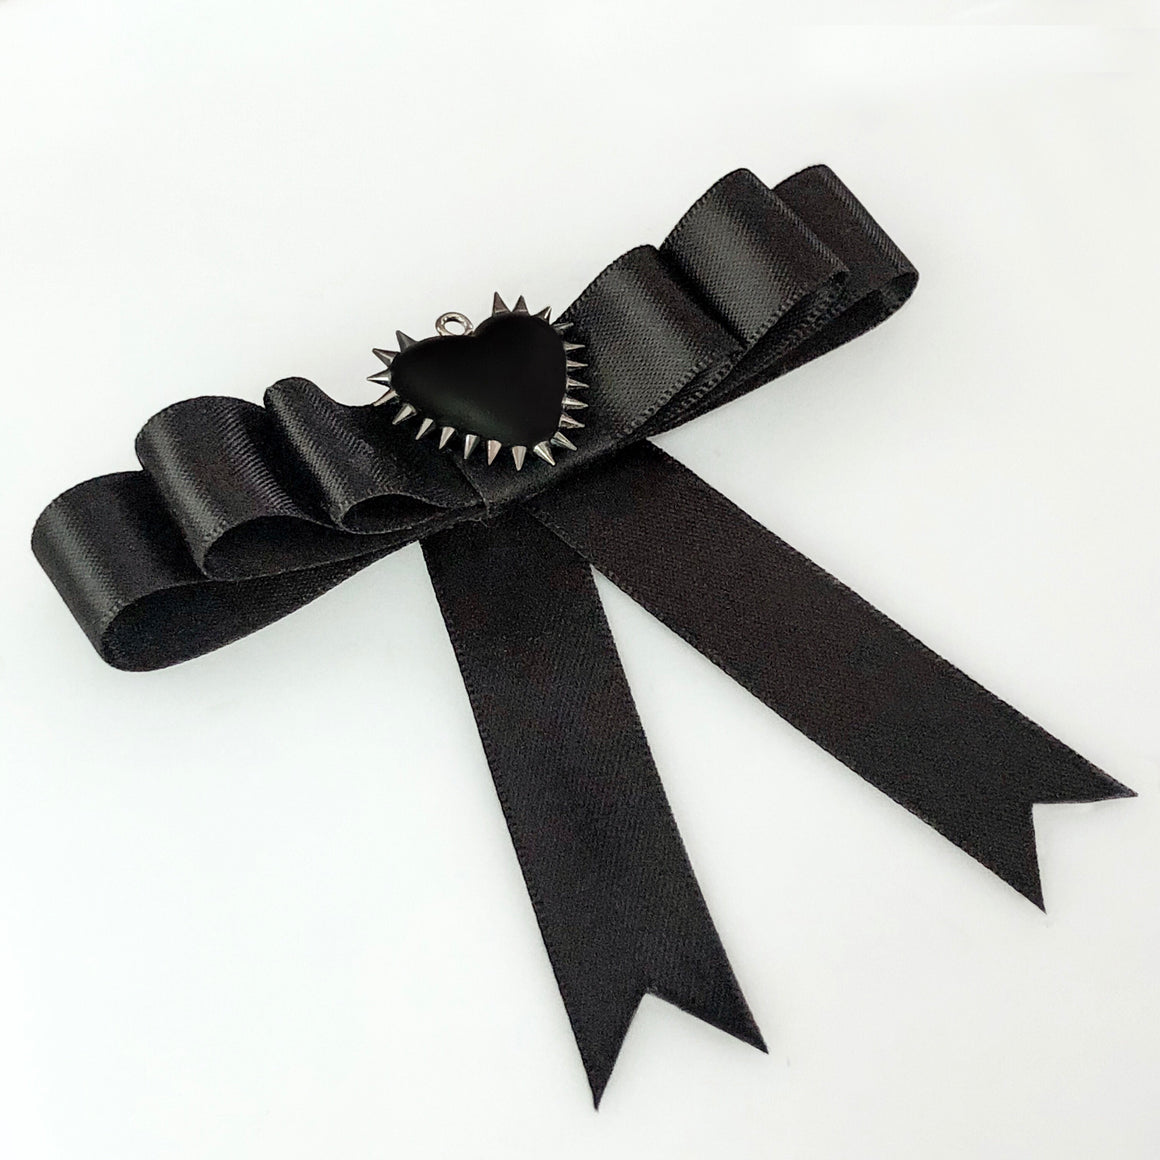 Micro Spiked Heart Bow